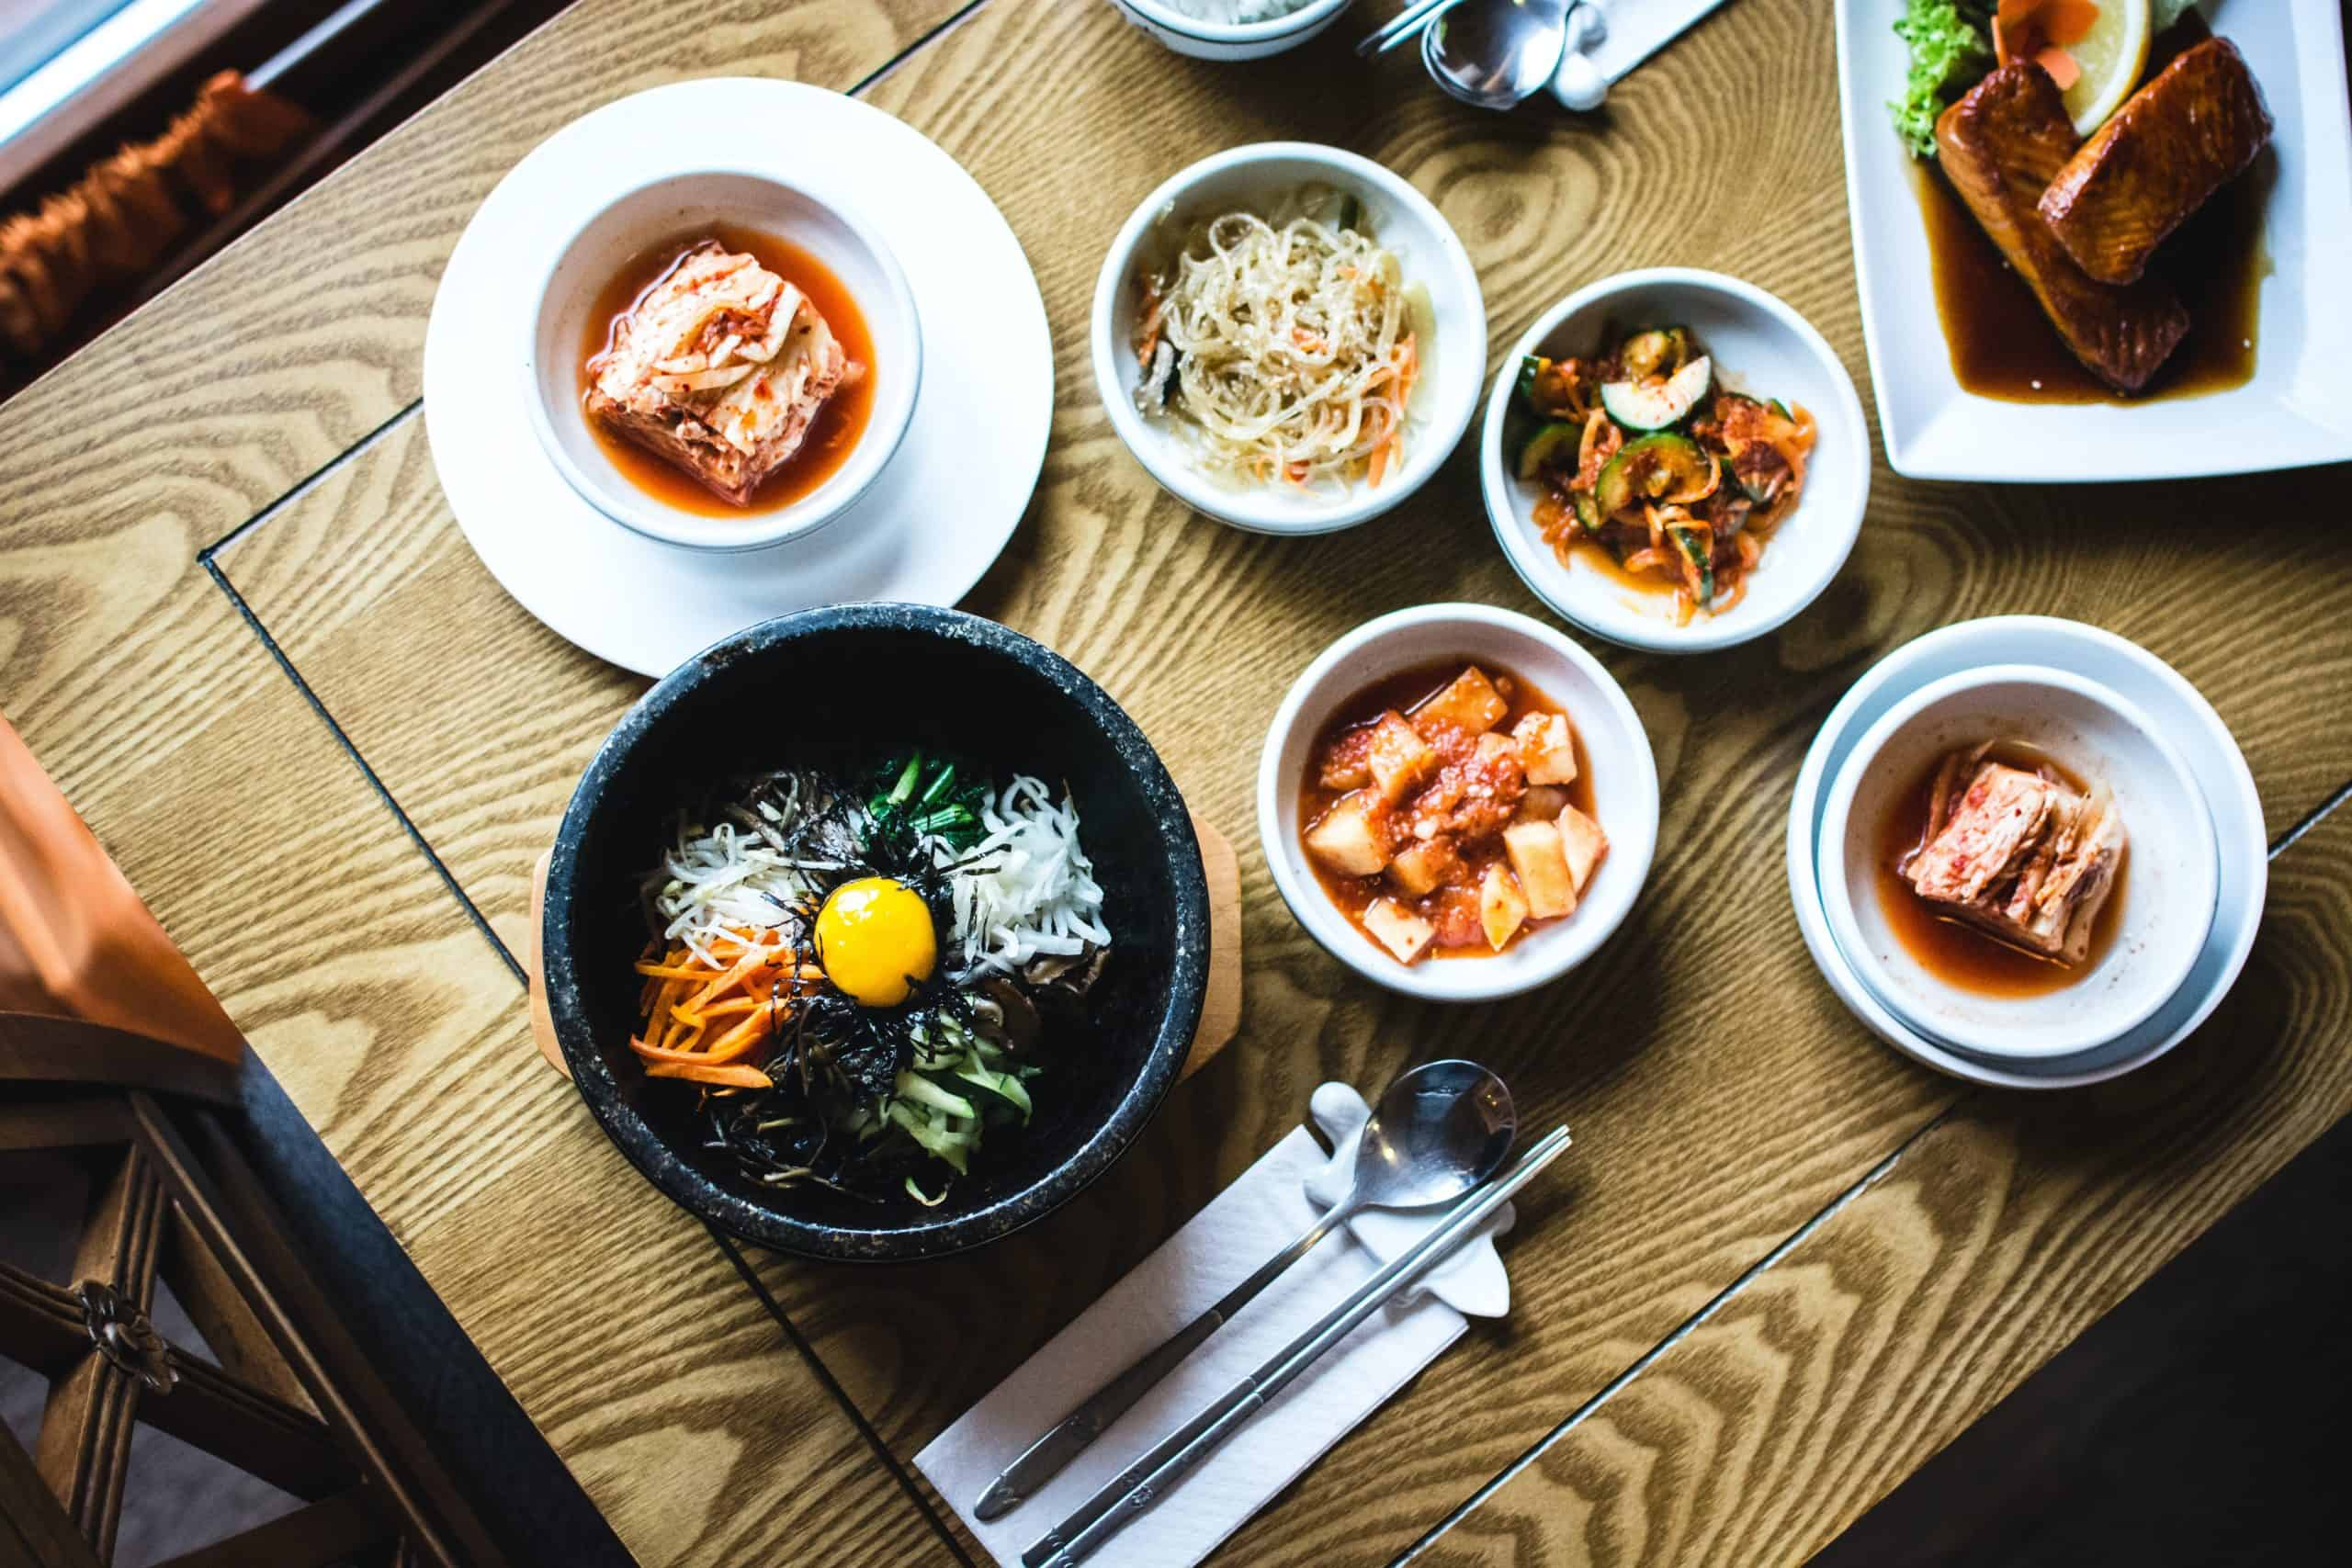 Discover Your Favorite Asian Food